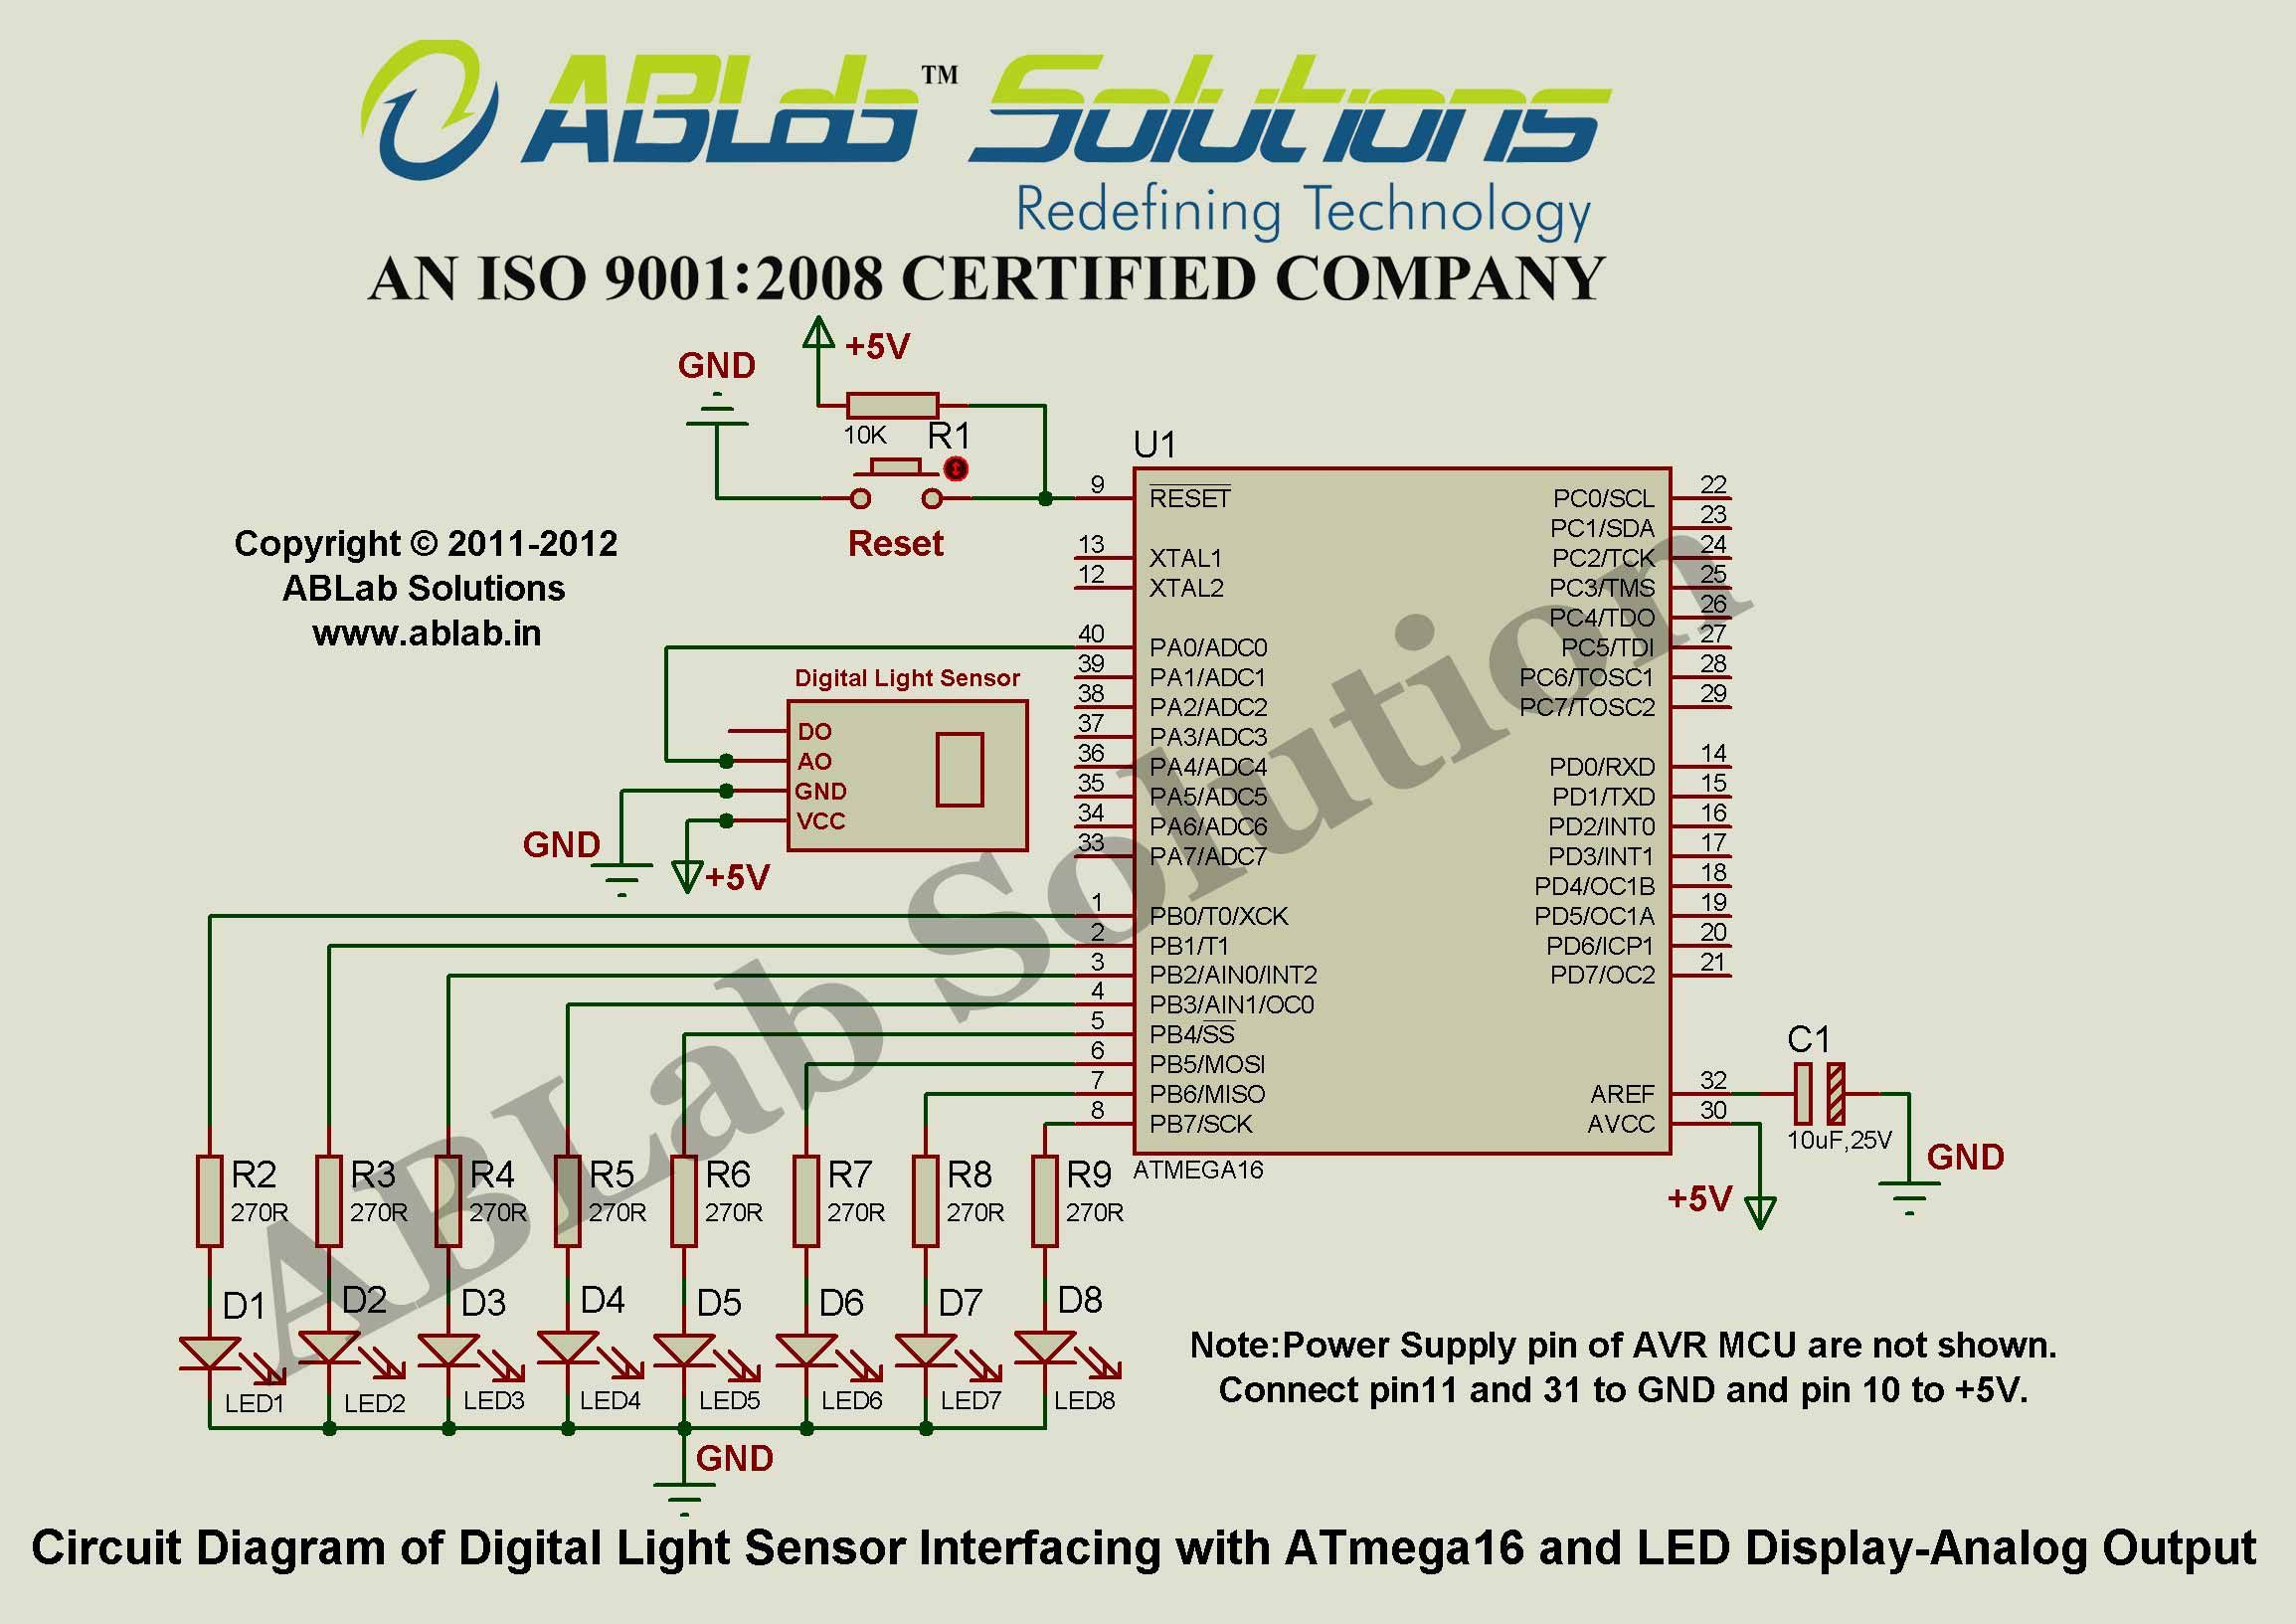 hight resolution of digital light sensor interfacing with avr atmega16 microcontroller and led display analog output circuit diagram ablab solutions